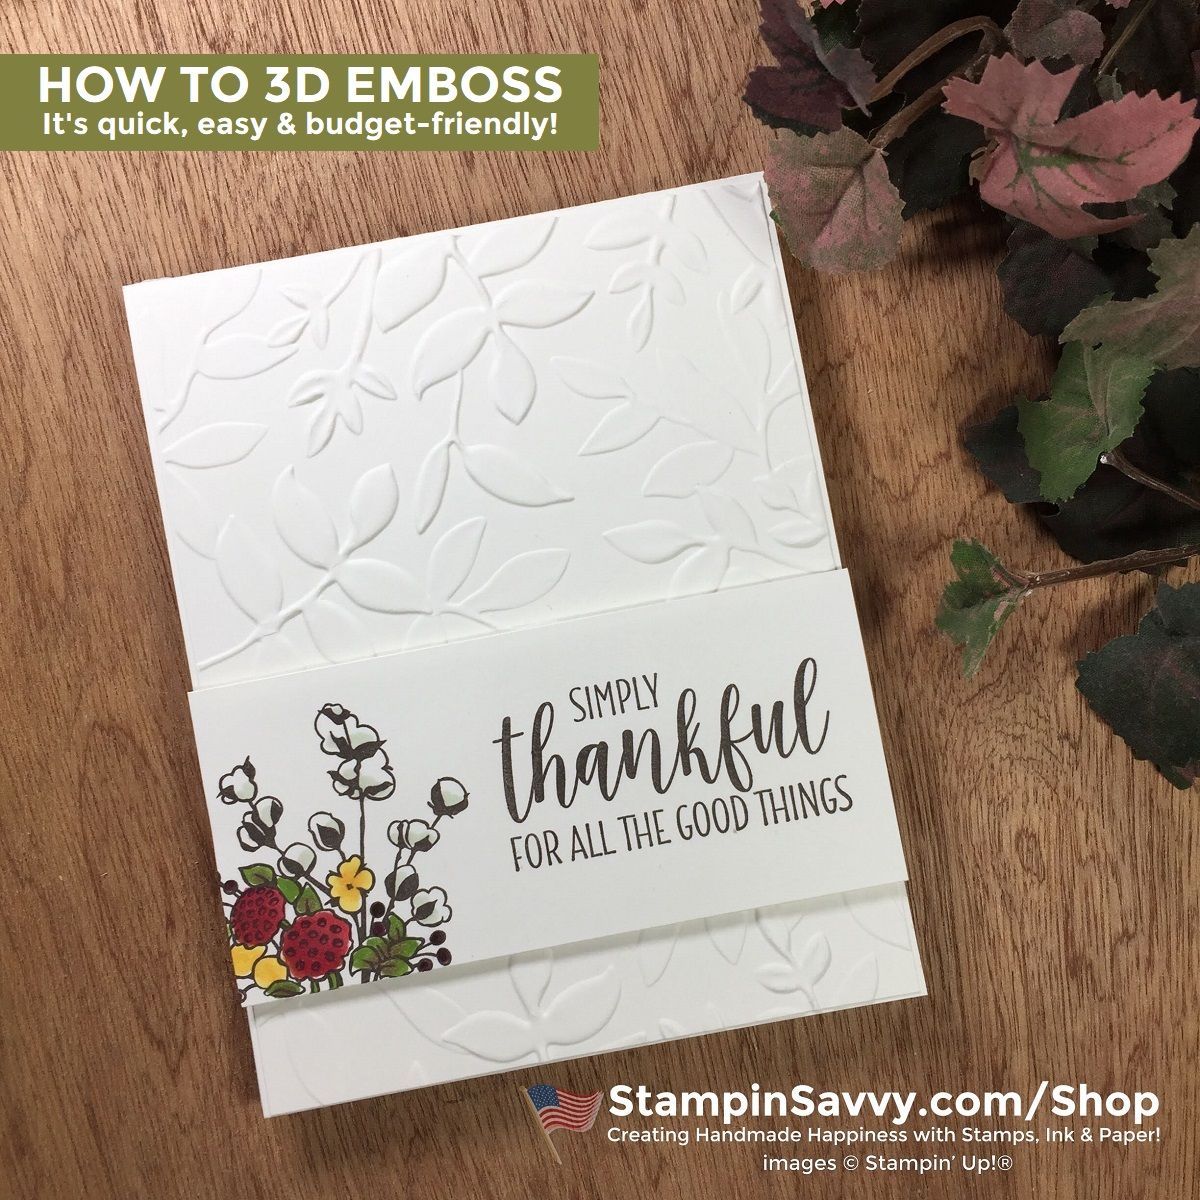 HOW-TO-3D-EMBOSS-LAYERED-LEAVES-COUNTRY-LANE-STAMPIN-UP-TAMMY-BEARD-STAMPINSAVVY